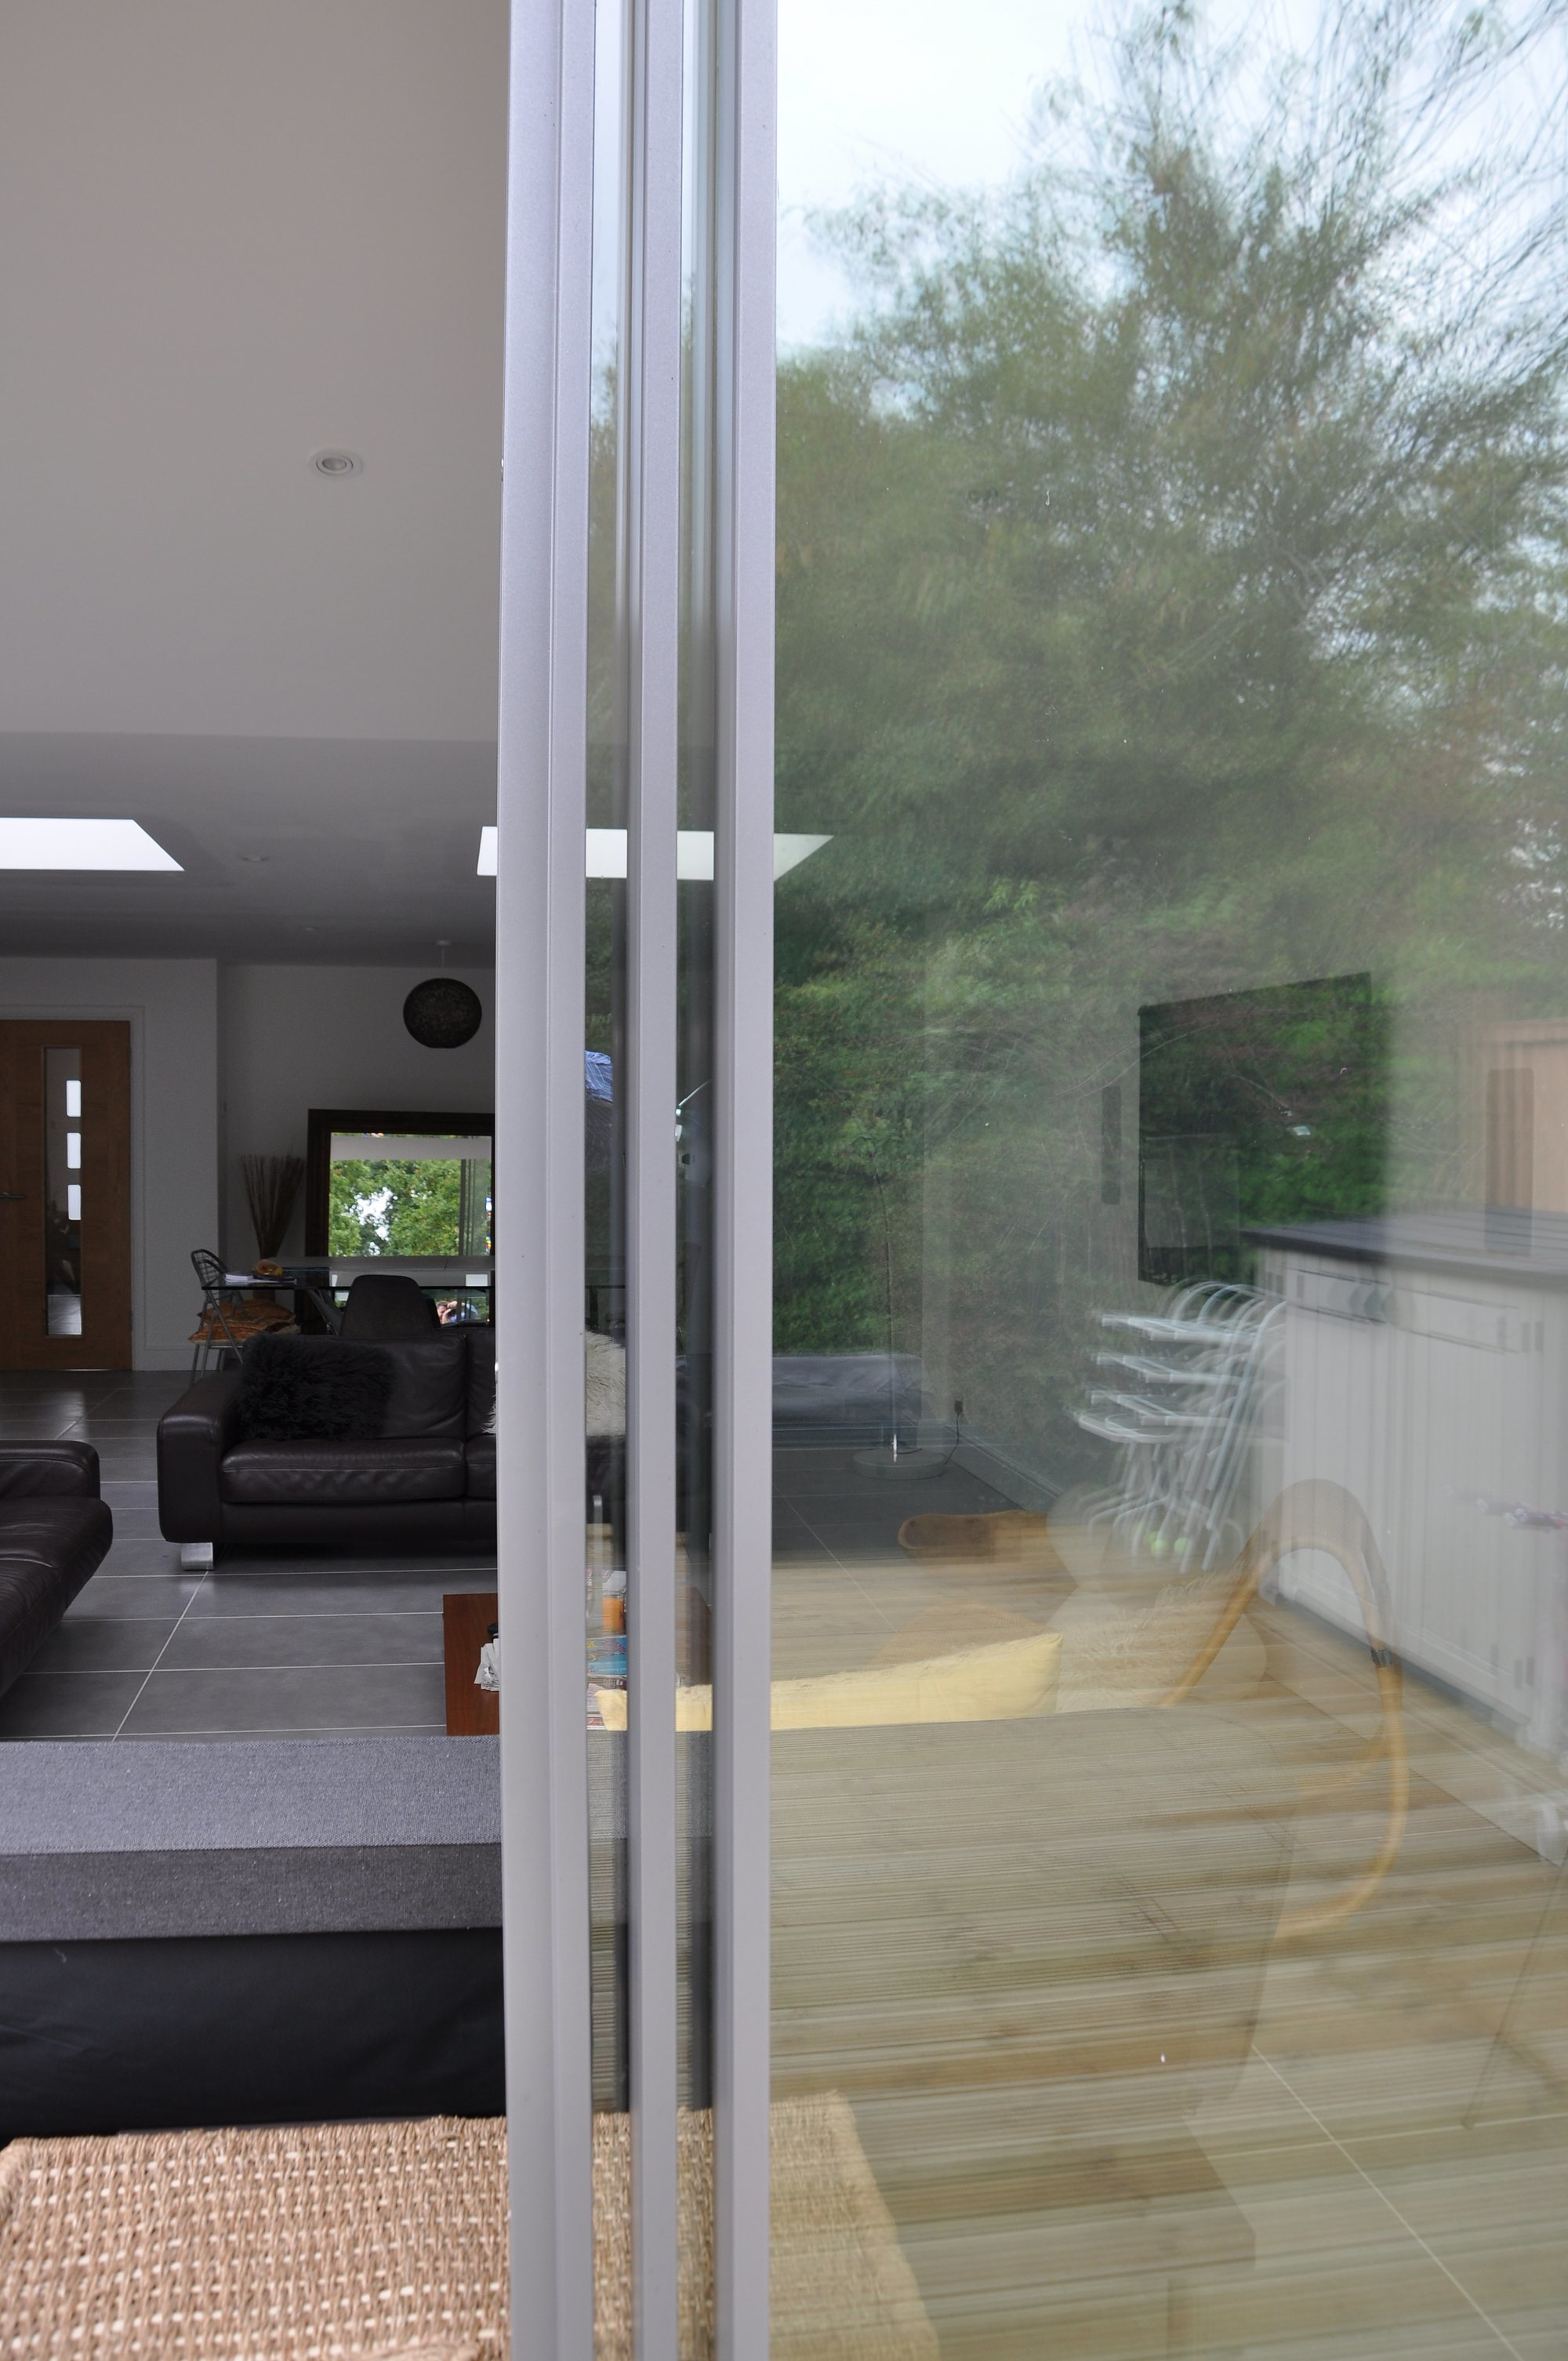 Slim aluminium framing to the minimal windows